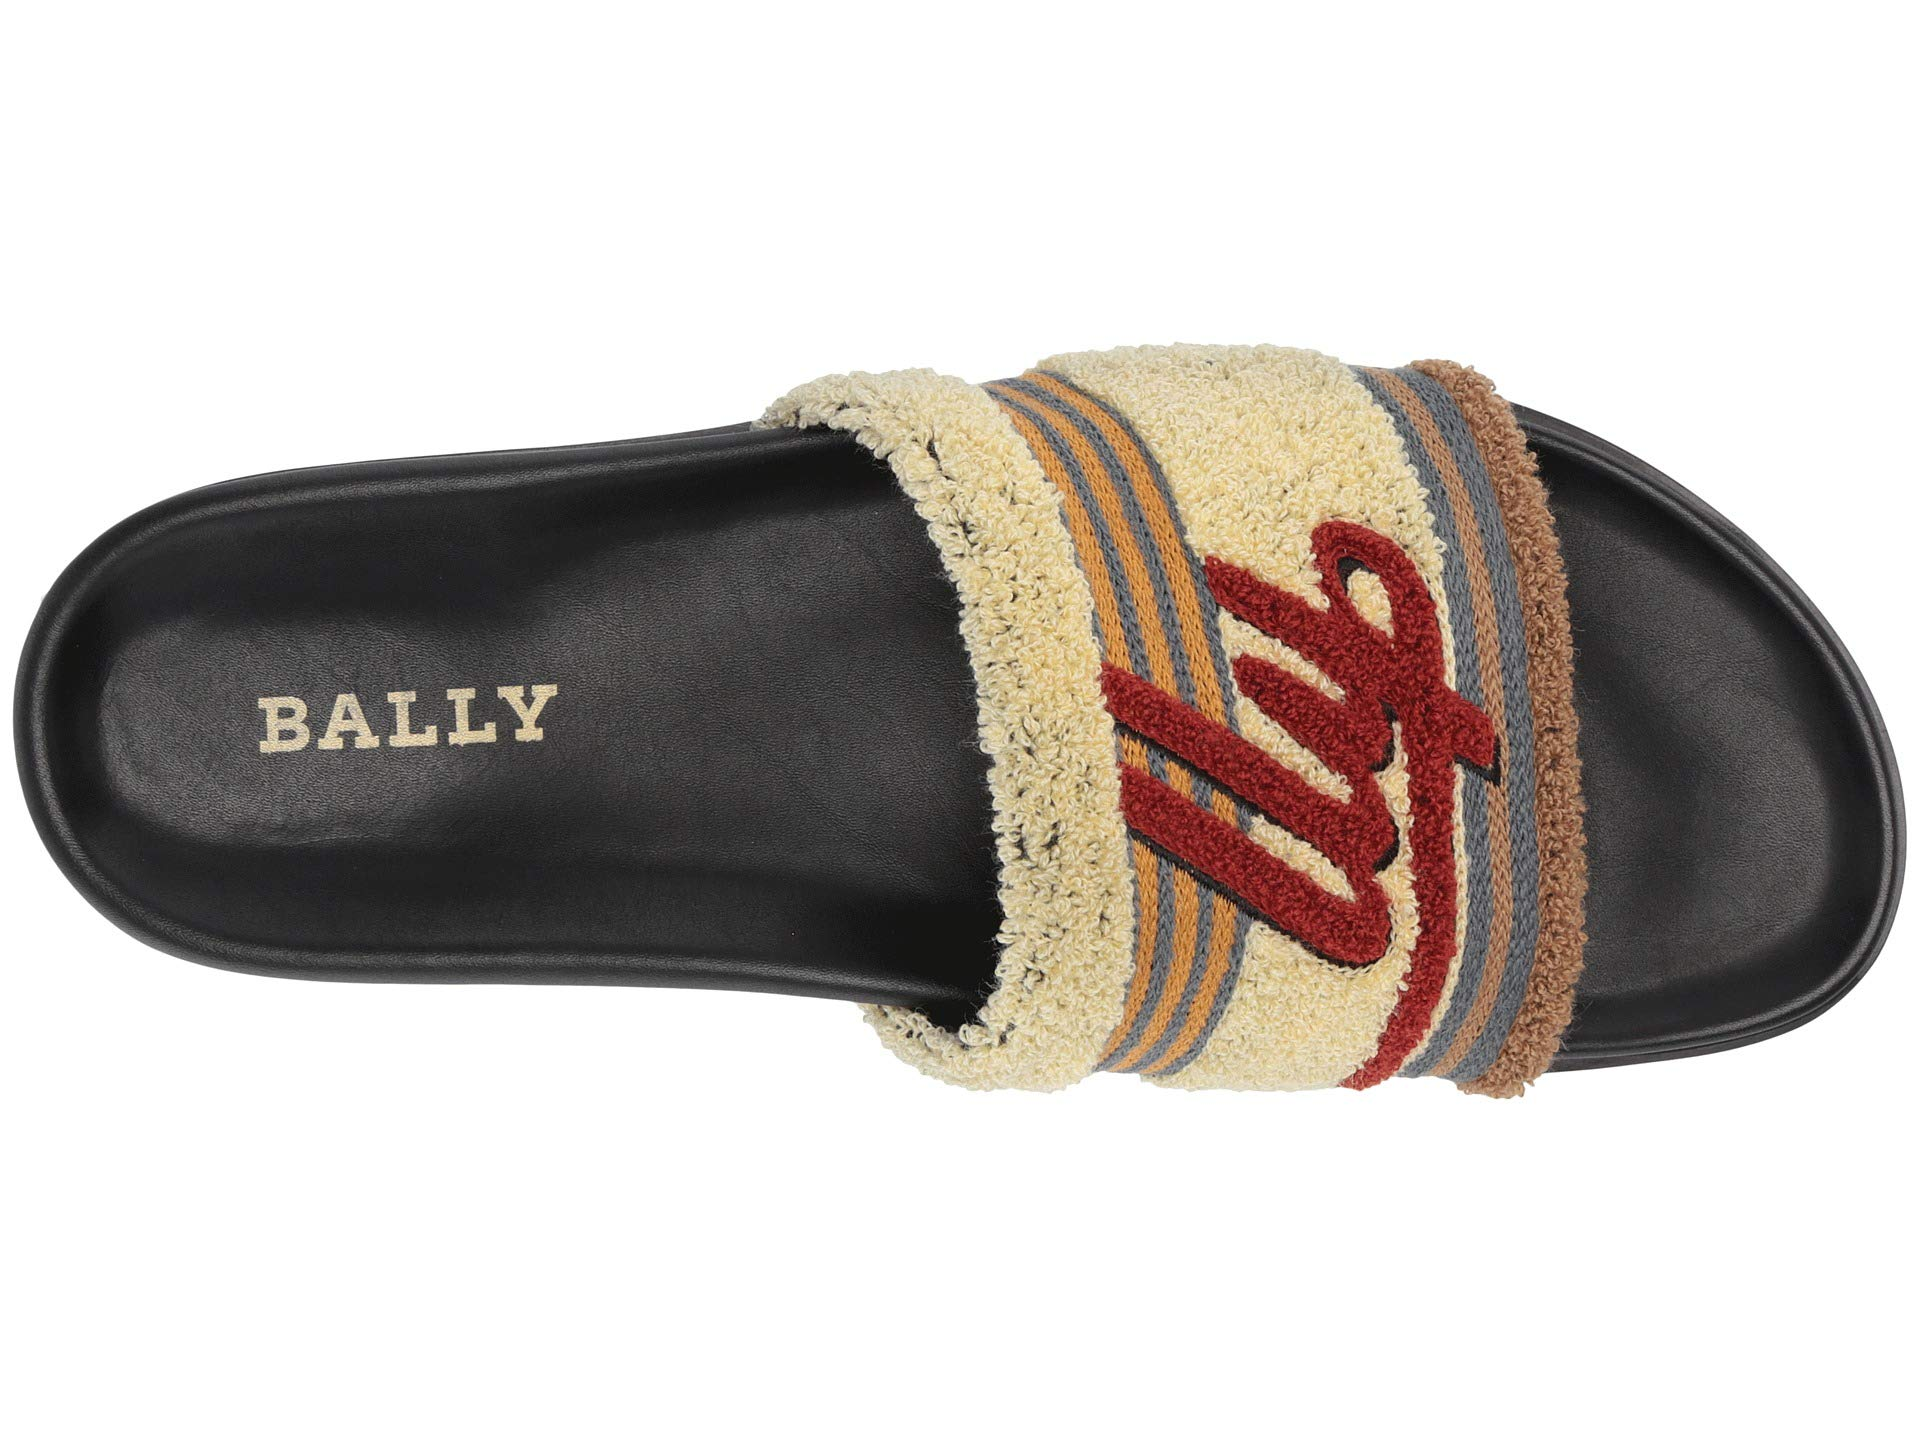 Ginger Bally Pool Bally Sandal Pool qBIq7